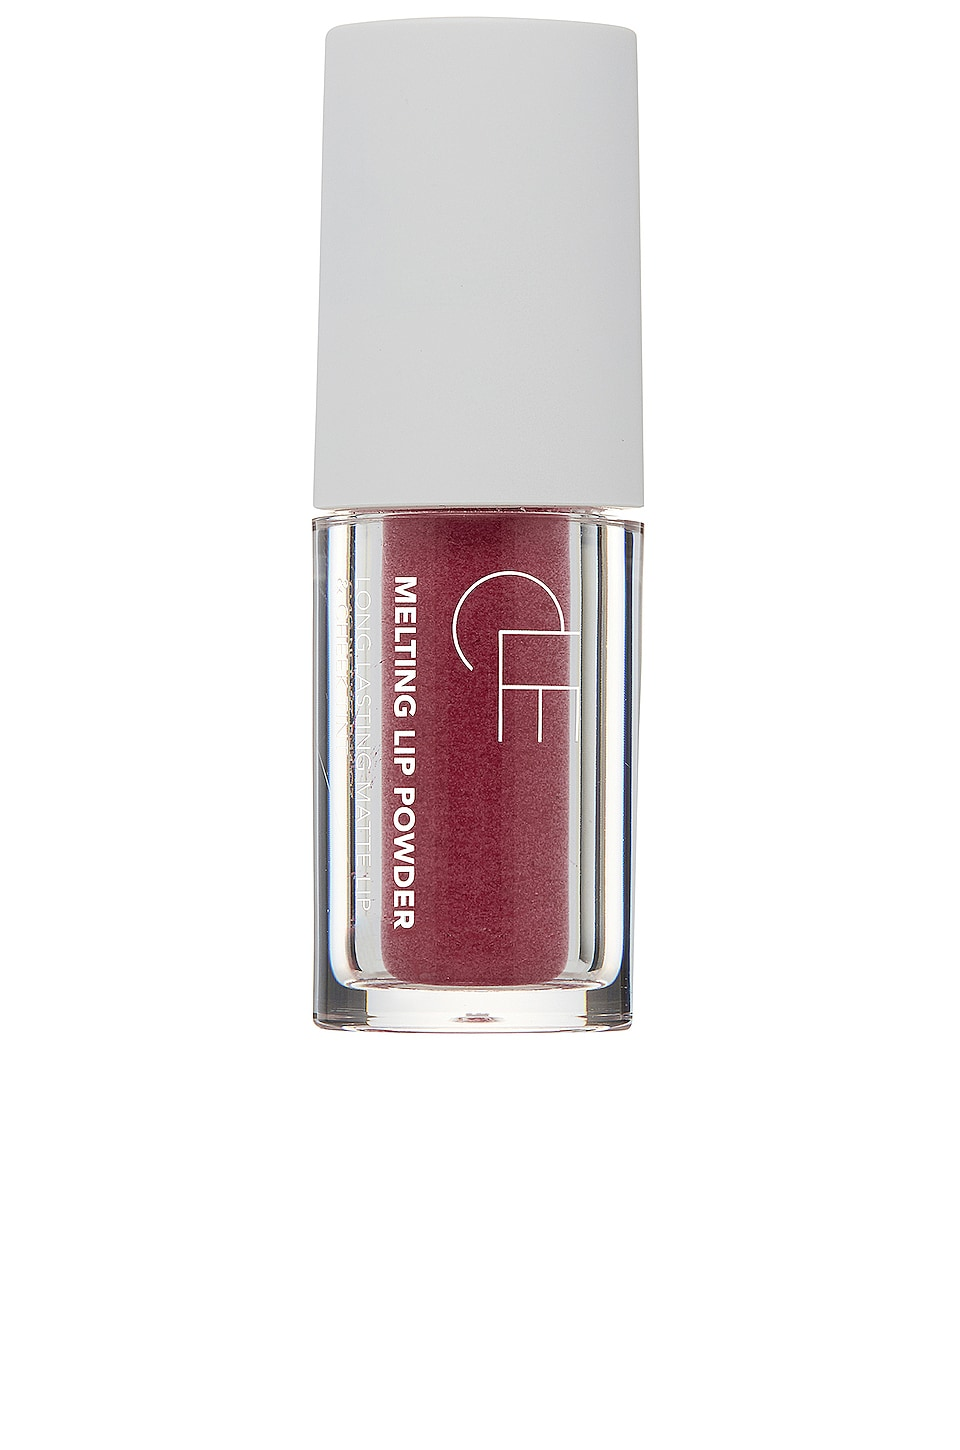 Cle Cosmetics Melting Lip Powder in Desert Rose